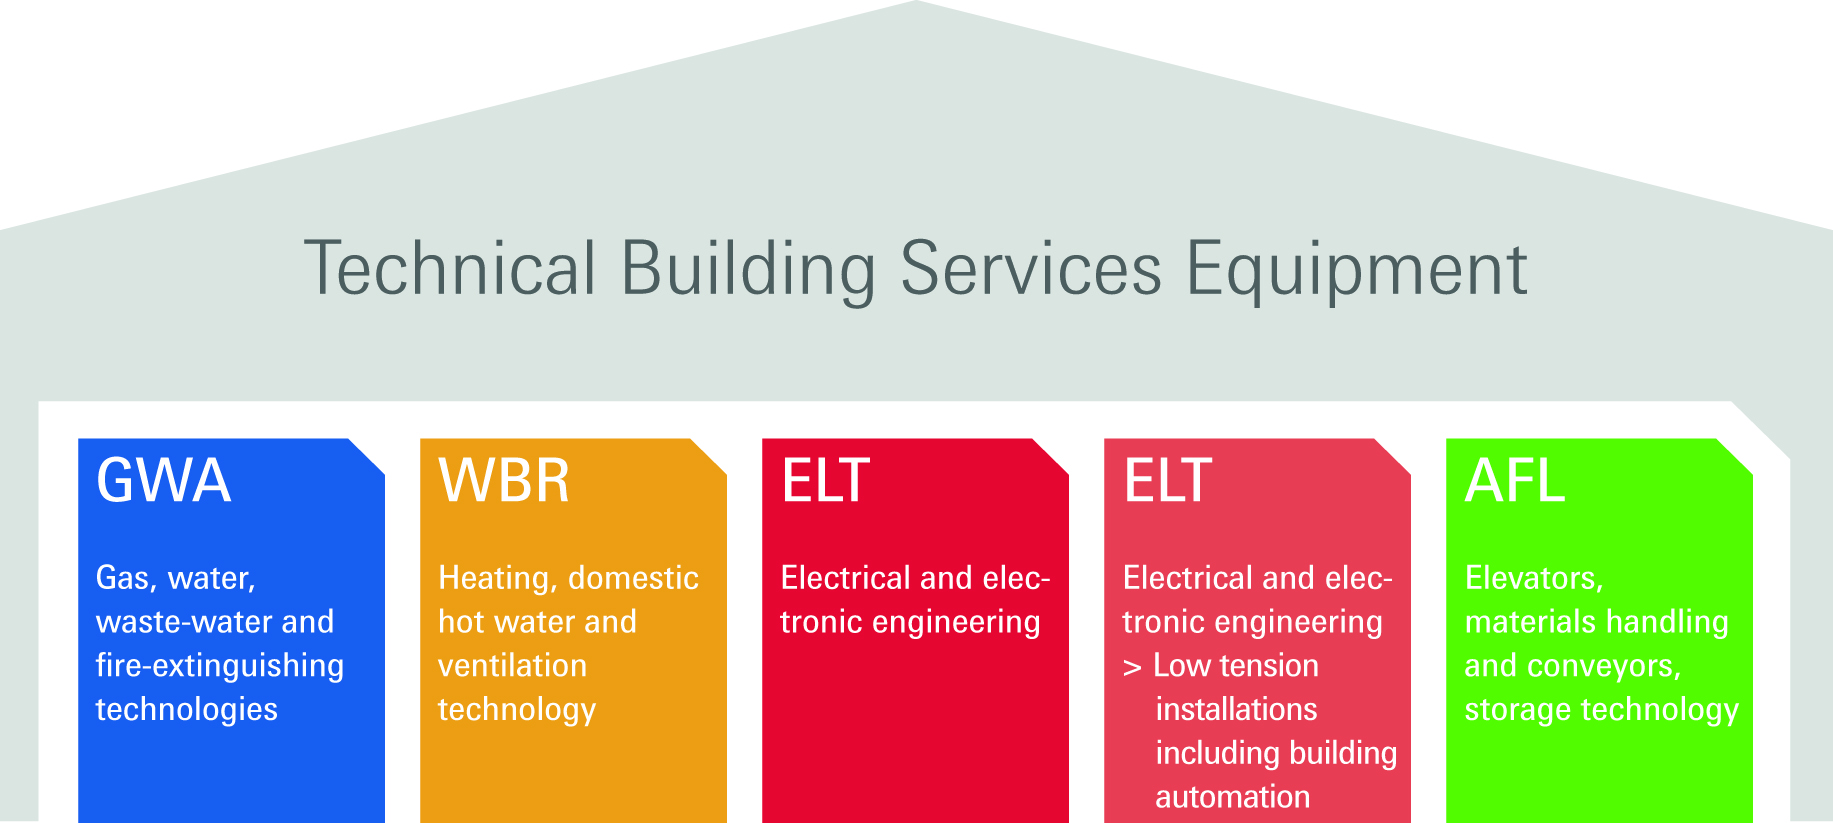 Technical Building Services Equipment